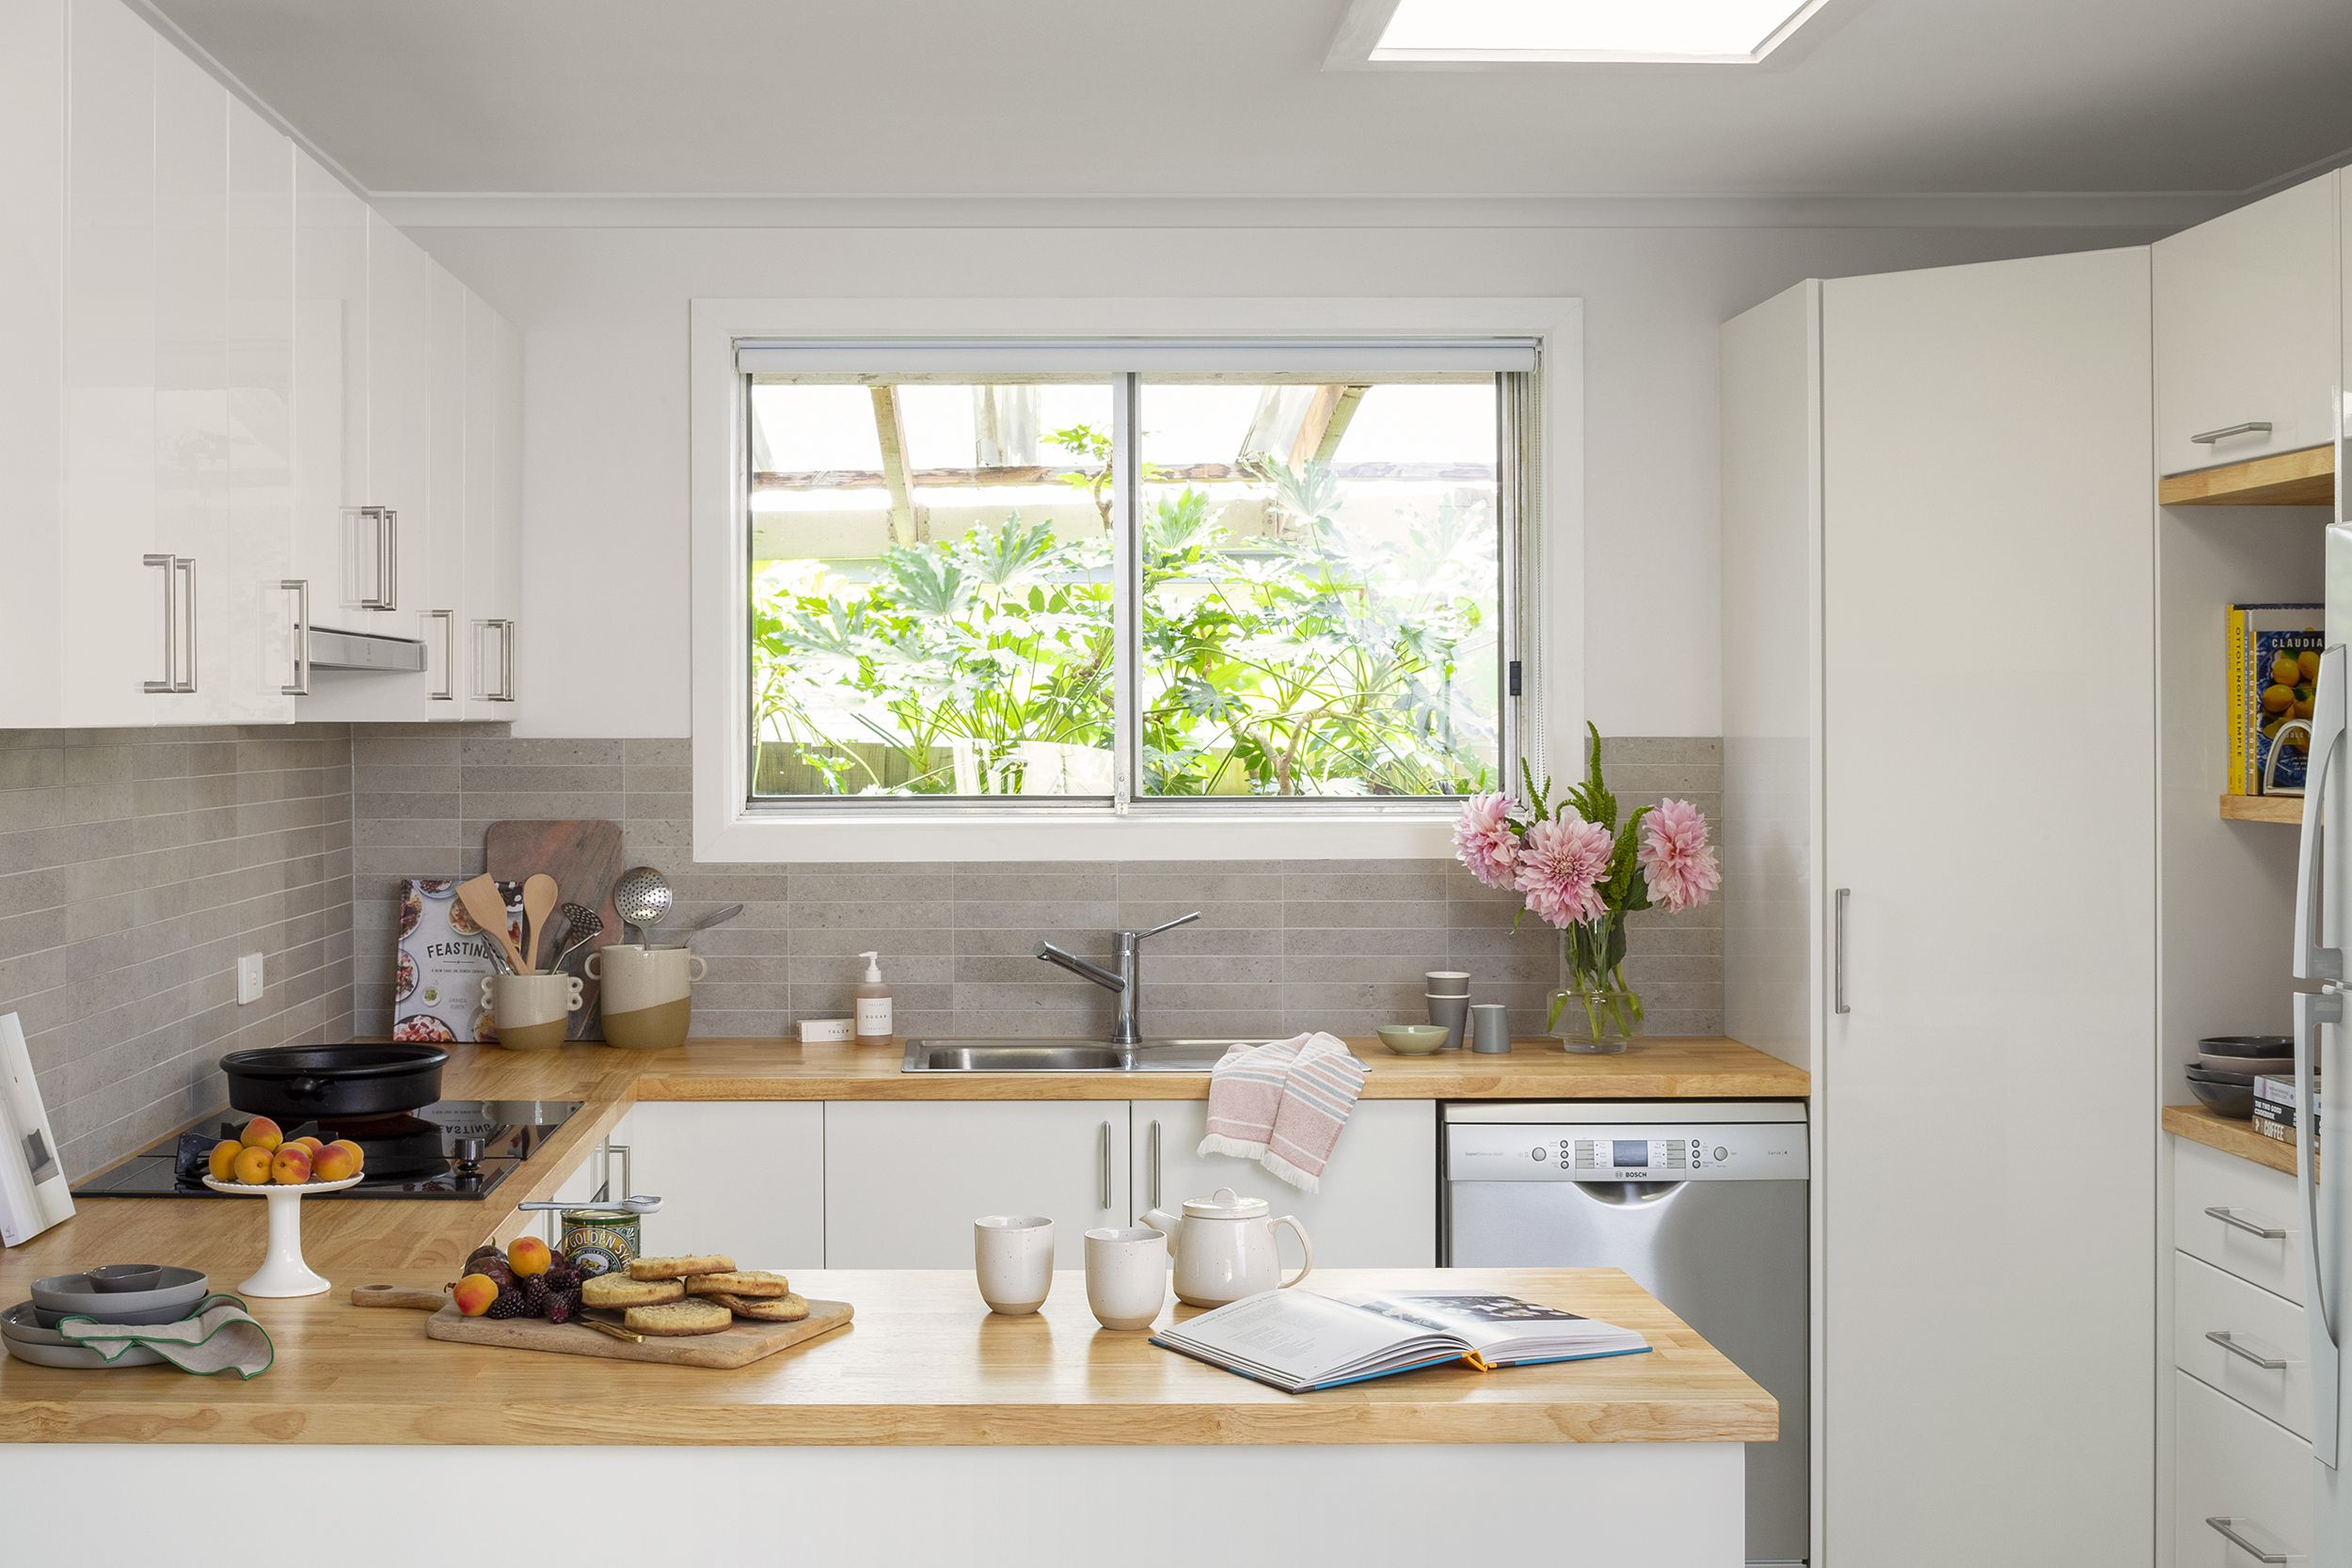 Modular Product in 2020 Kitchen inspirations, Kitchen